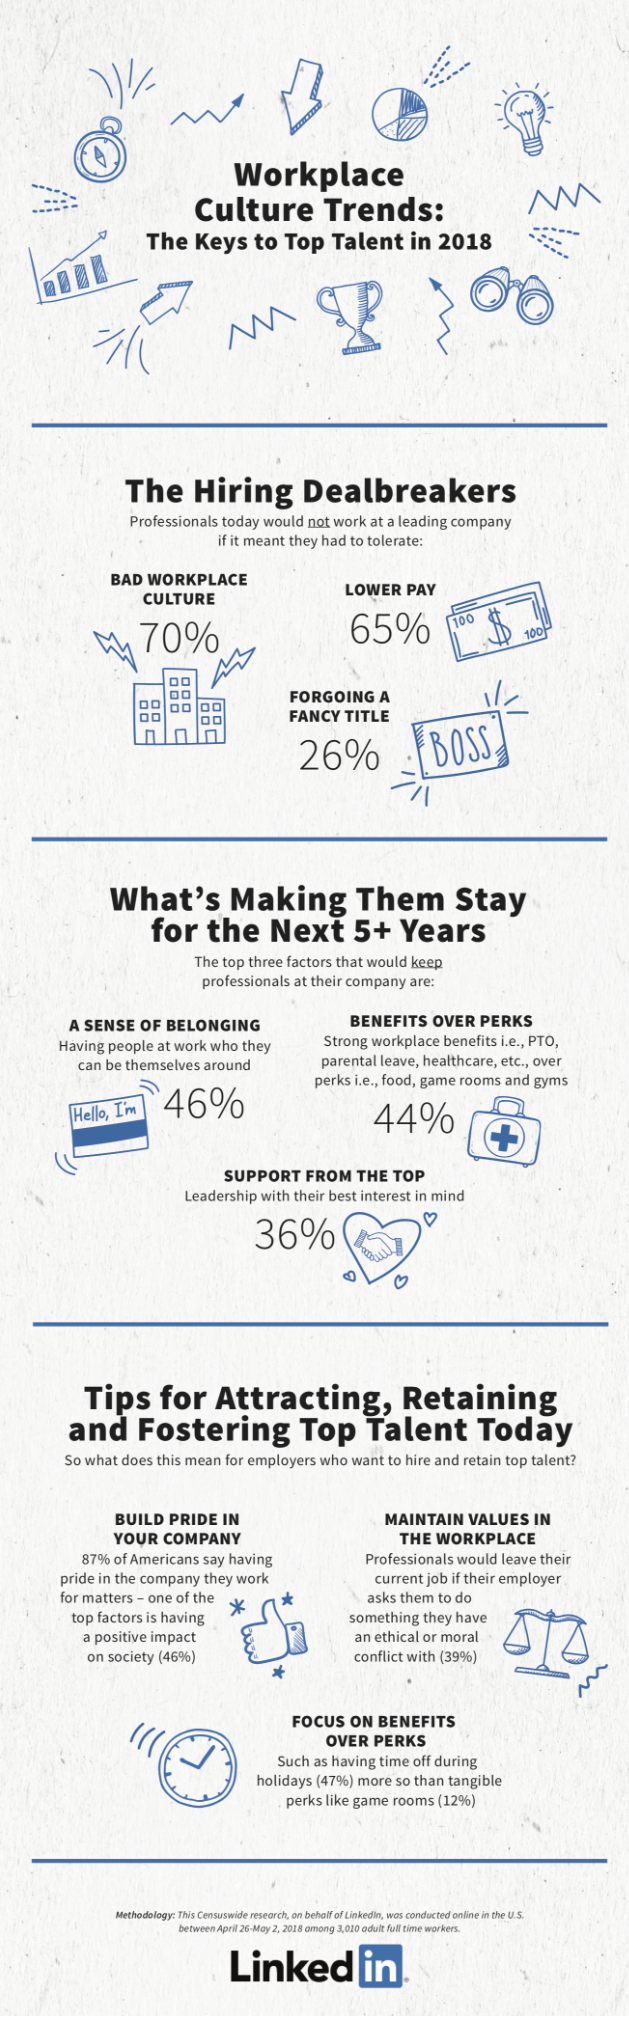 LinkedIn Workplace Culture infographic